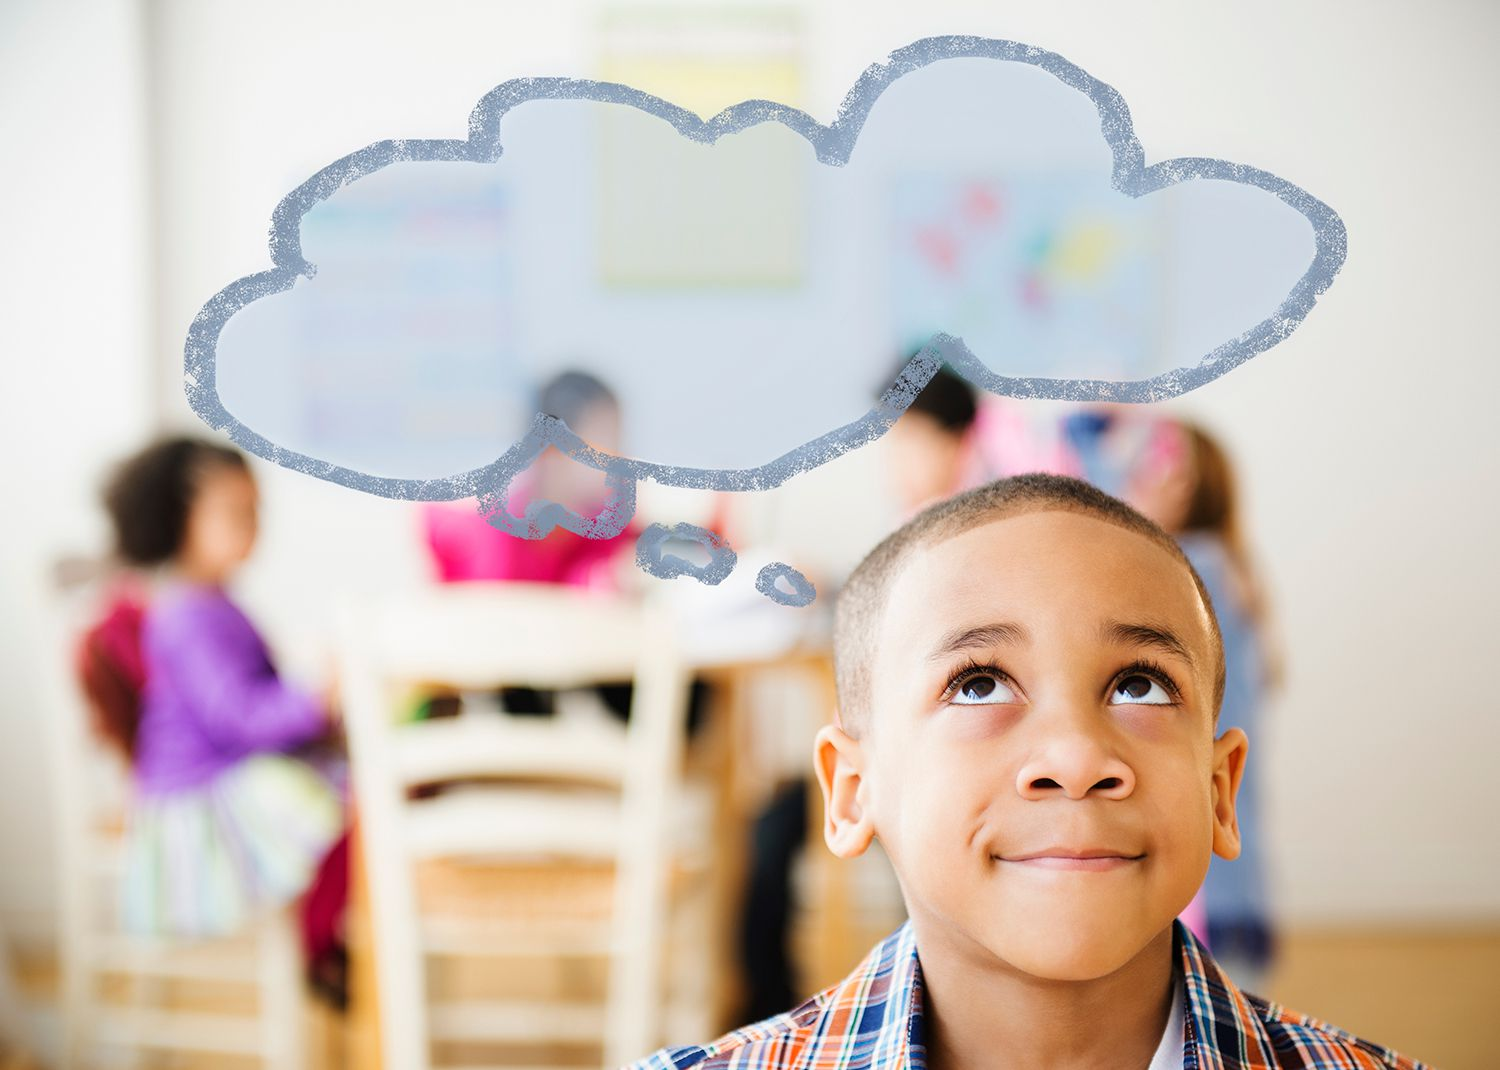 Boy with thought bubble over his head